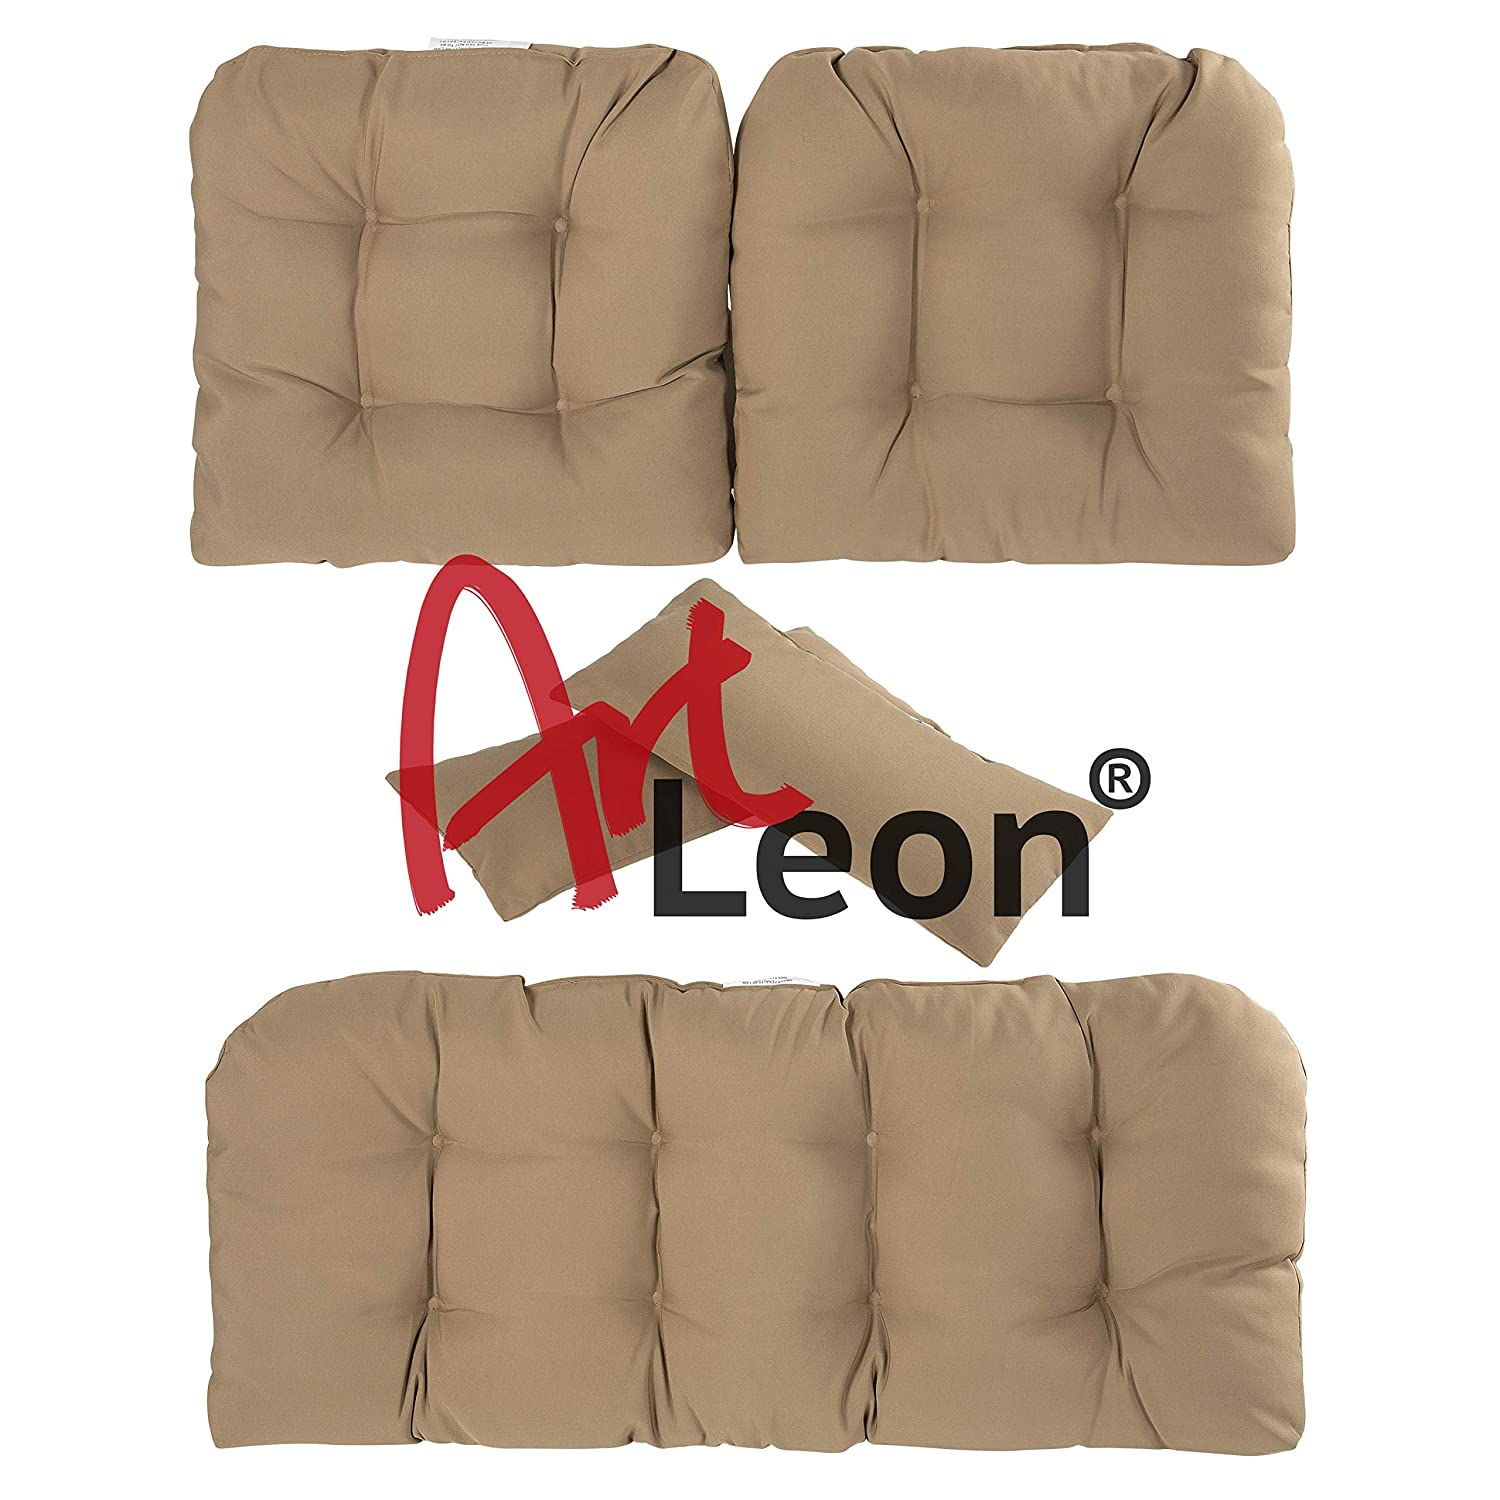 Art Leon Outdoor//Indoor Home Chair Seat Cushions 5 Pieces Seat and Back Cushion Set for Patio Deep Seat,Wicker Loveseat,Settee,Bench Blue and Yellow Floral